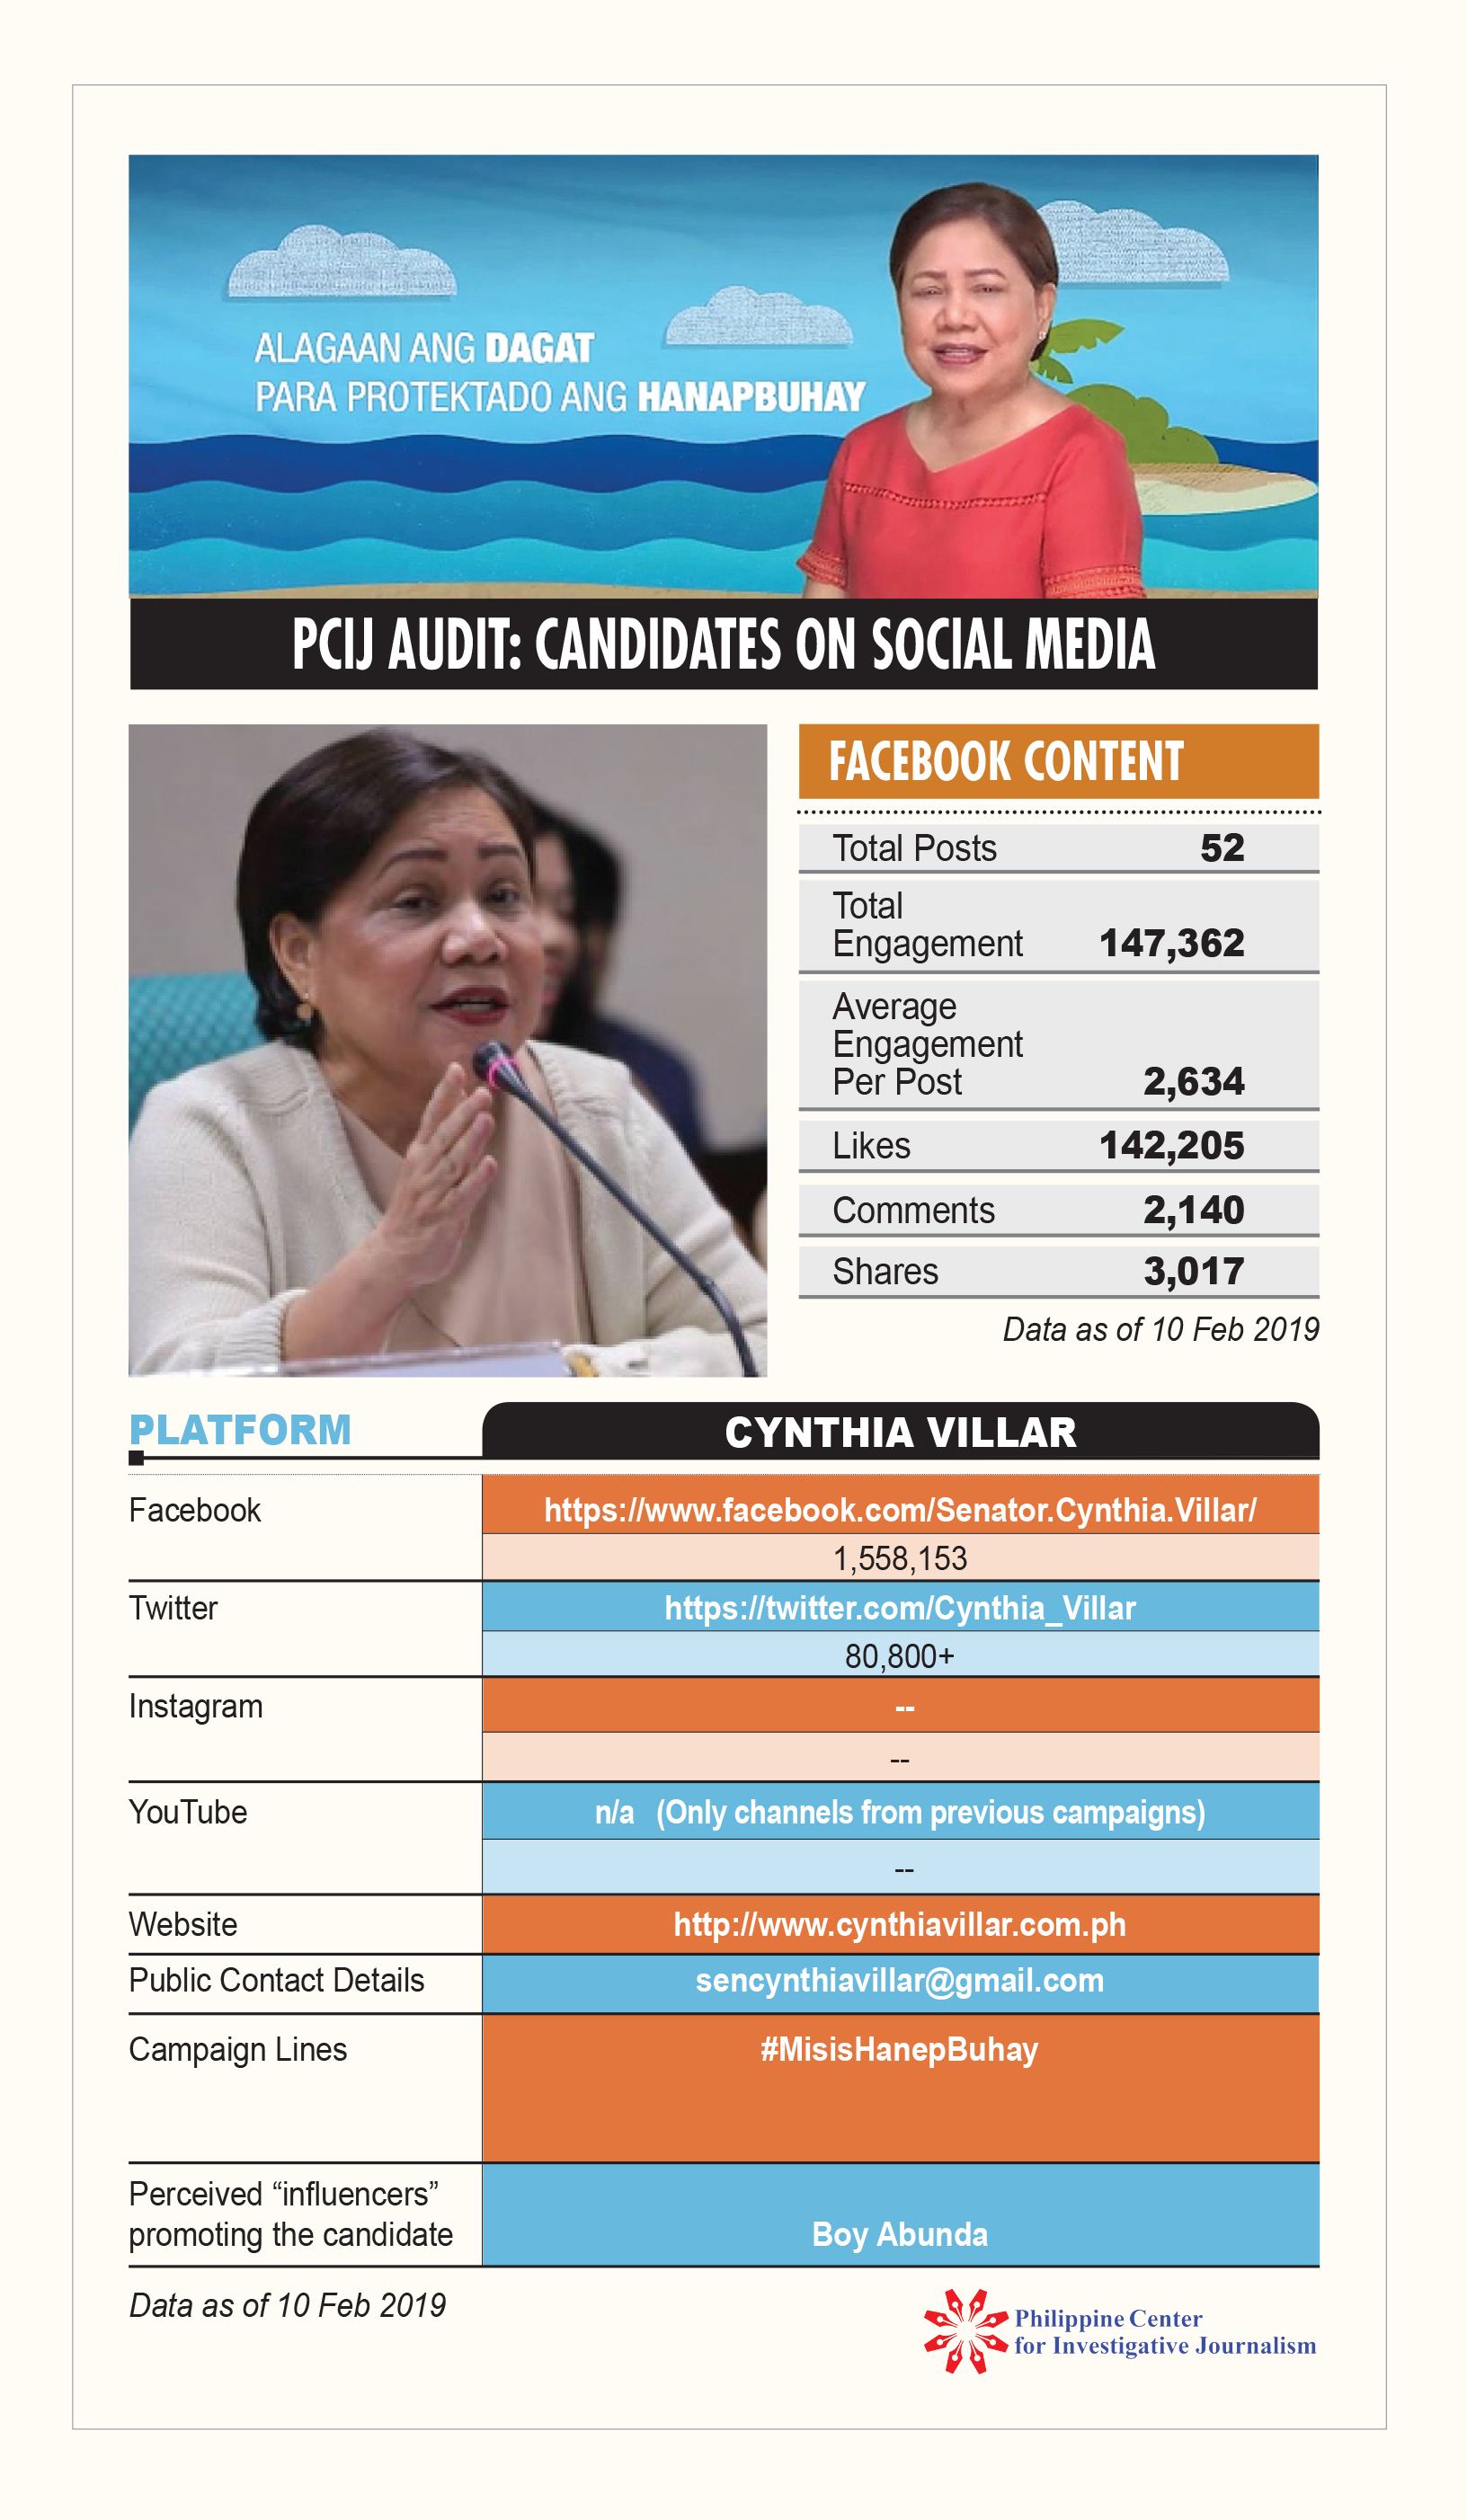 PCIJ Social Audit. Cynthia Villar 10 feb 19